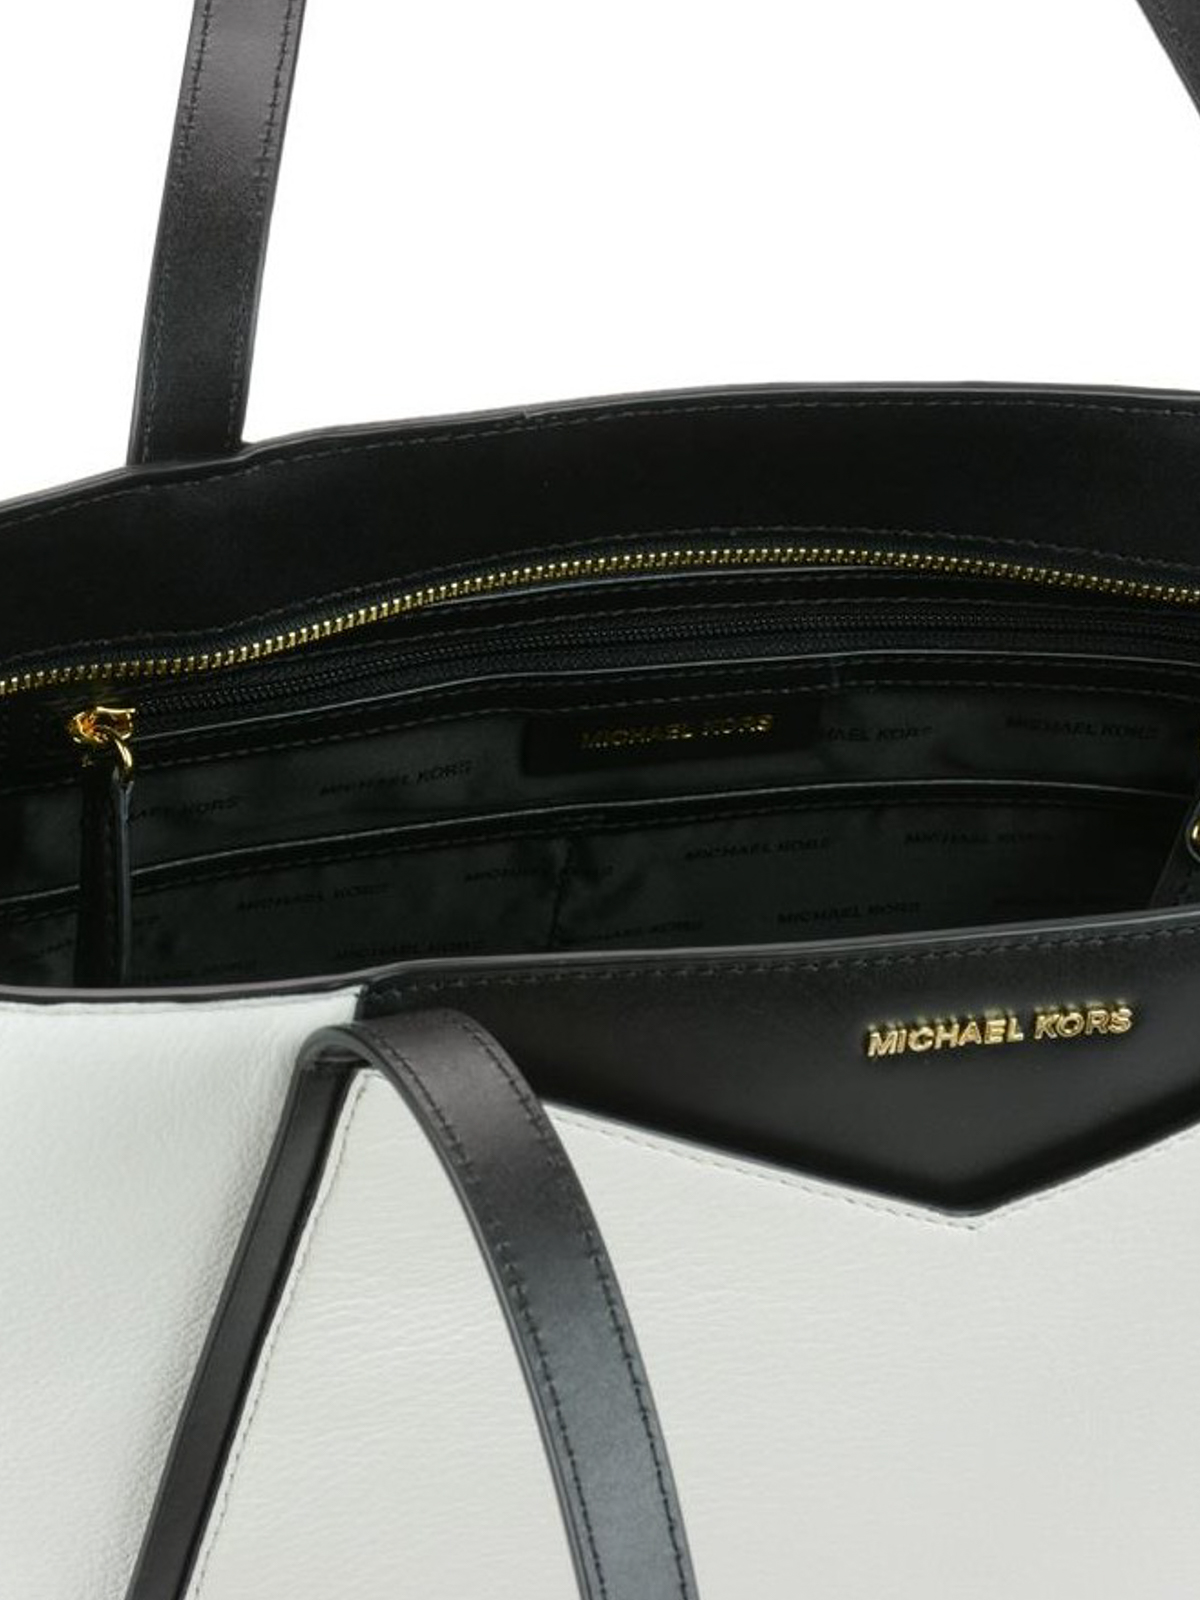 fca0004831e9 MICHAEL KORS buy online Whitney bicolour leather large tote. MICHAEL KORS: totes  bags ...